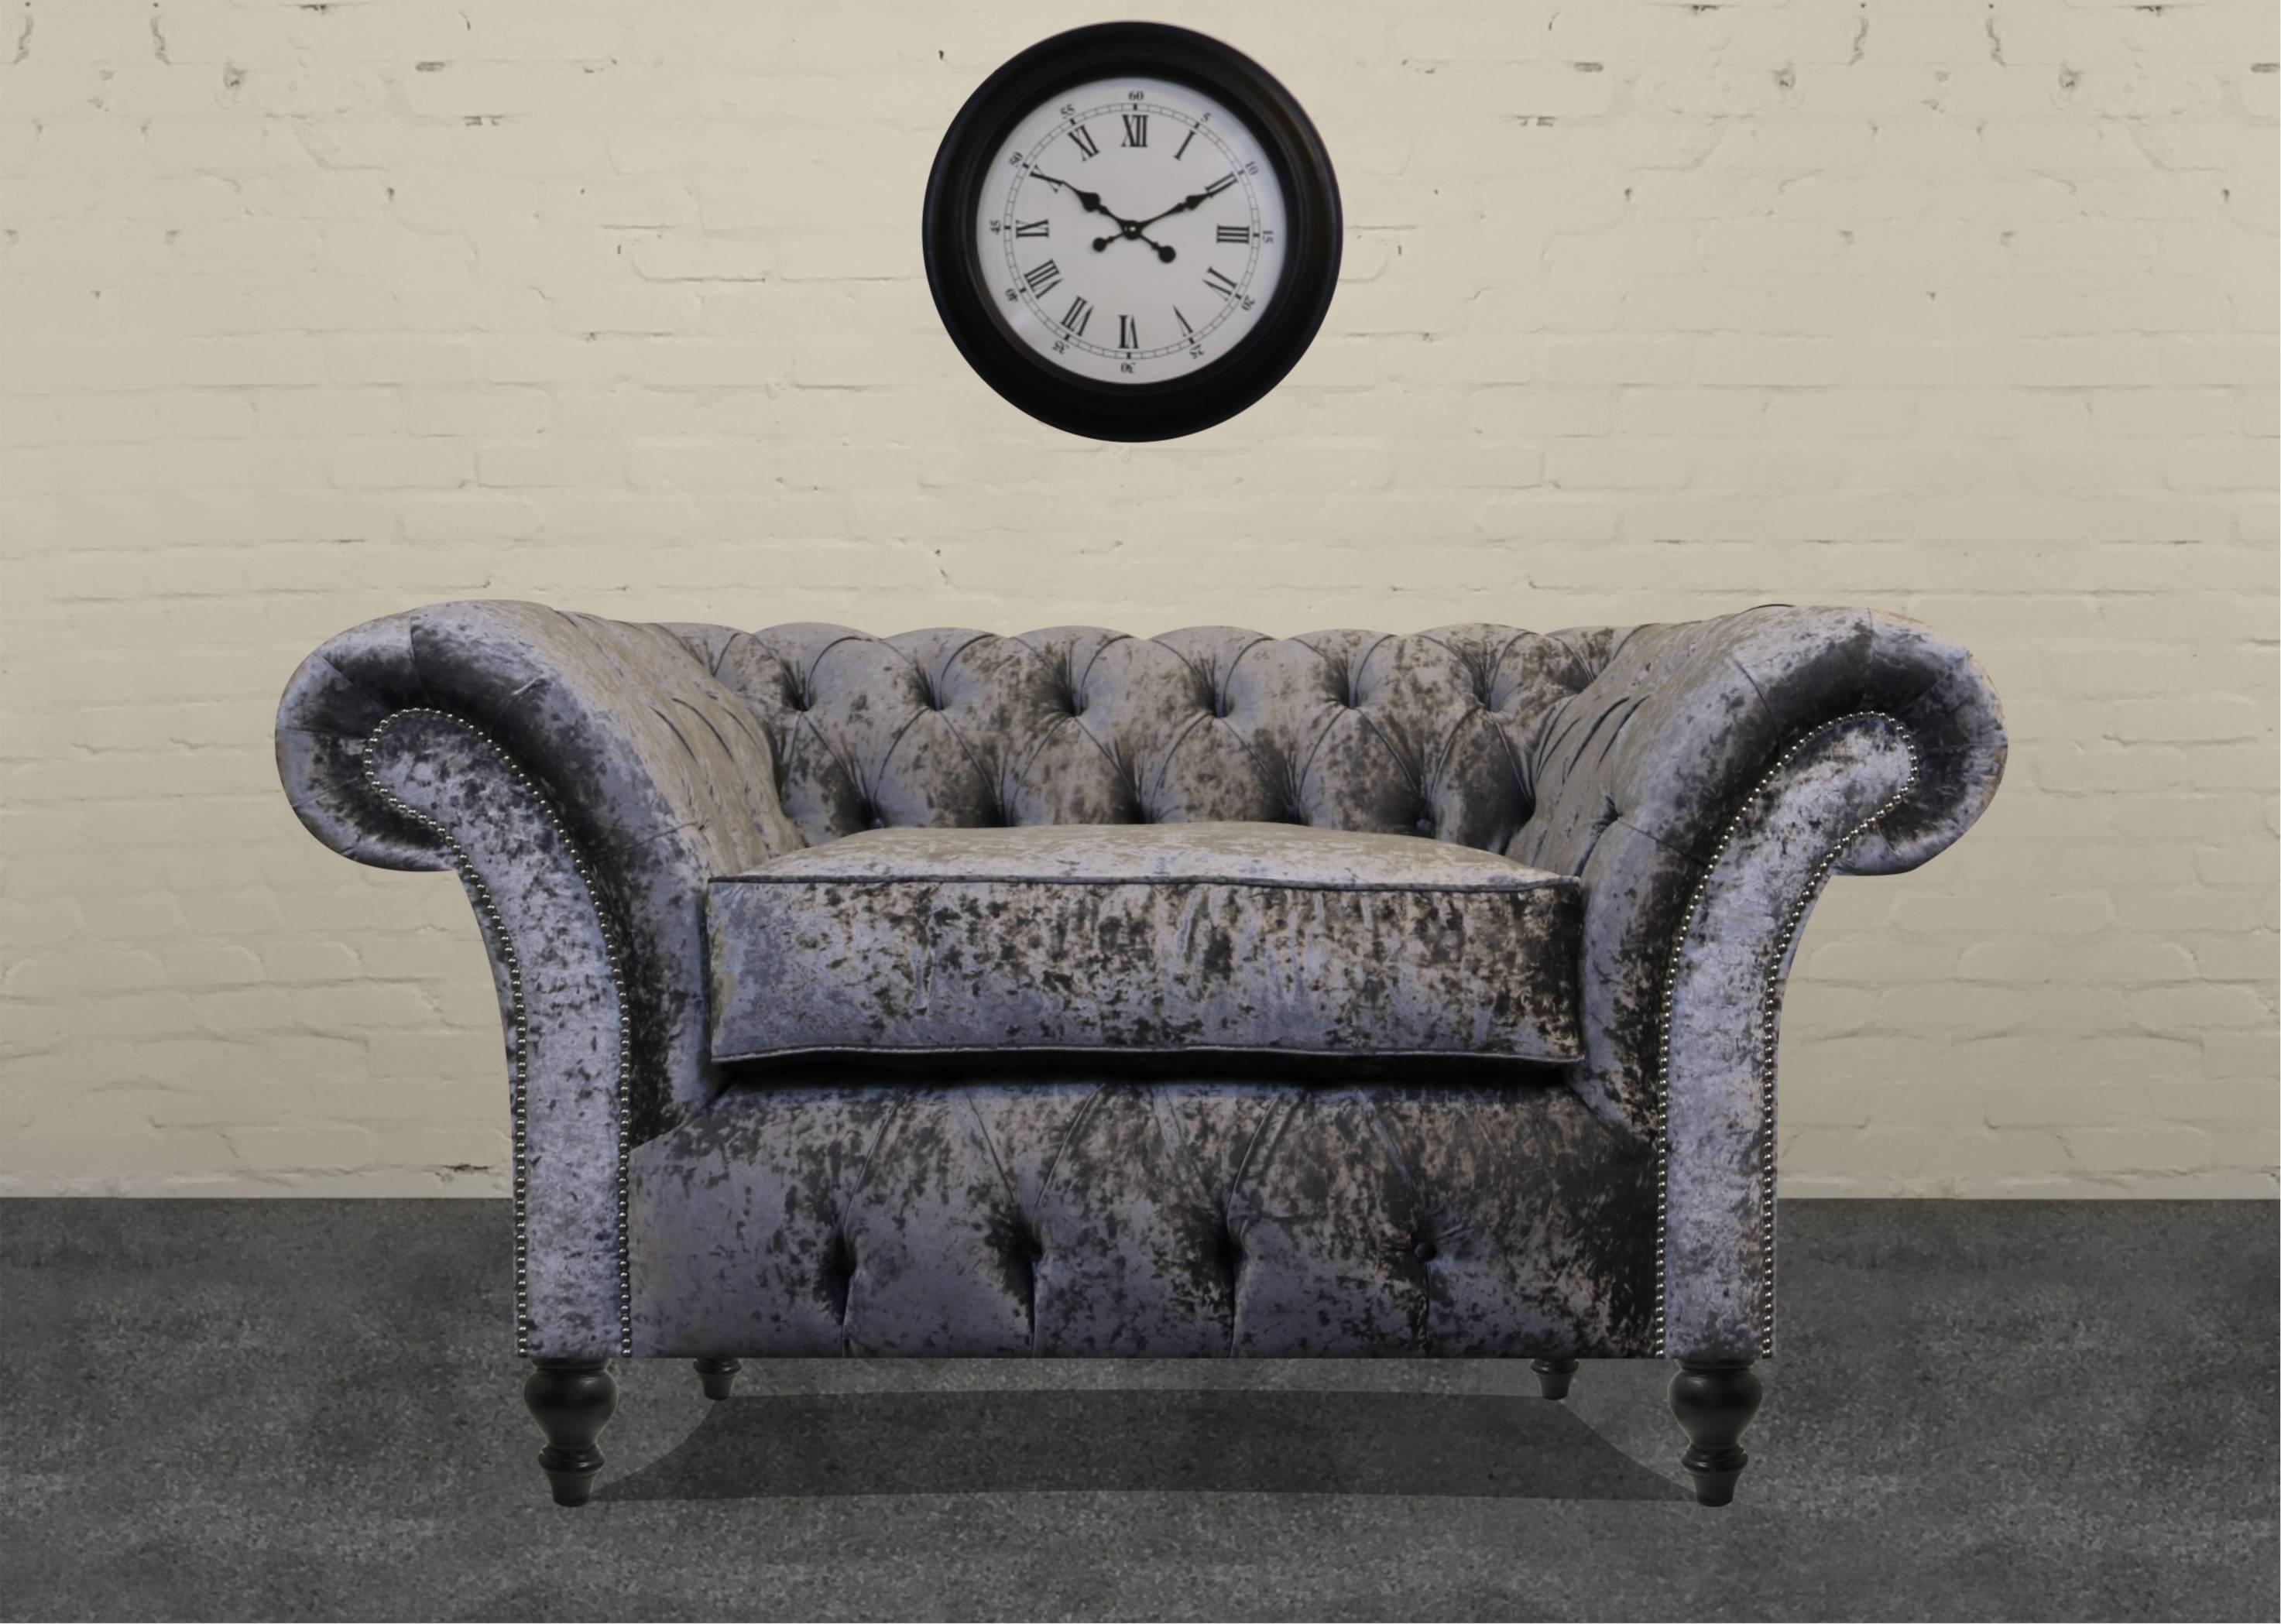 Chesterfield Snuggle Chair Archives - Timeless Sofas - Handmade inside Snuggle Sofas (Image 5 of 30)